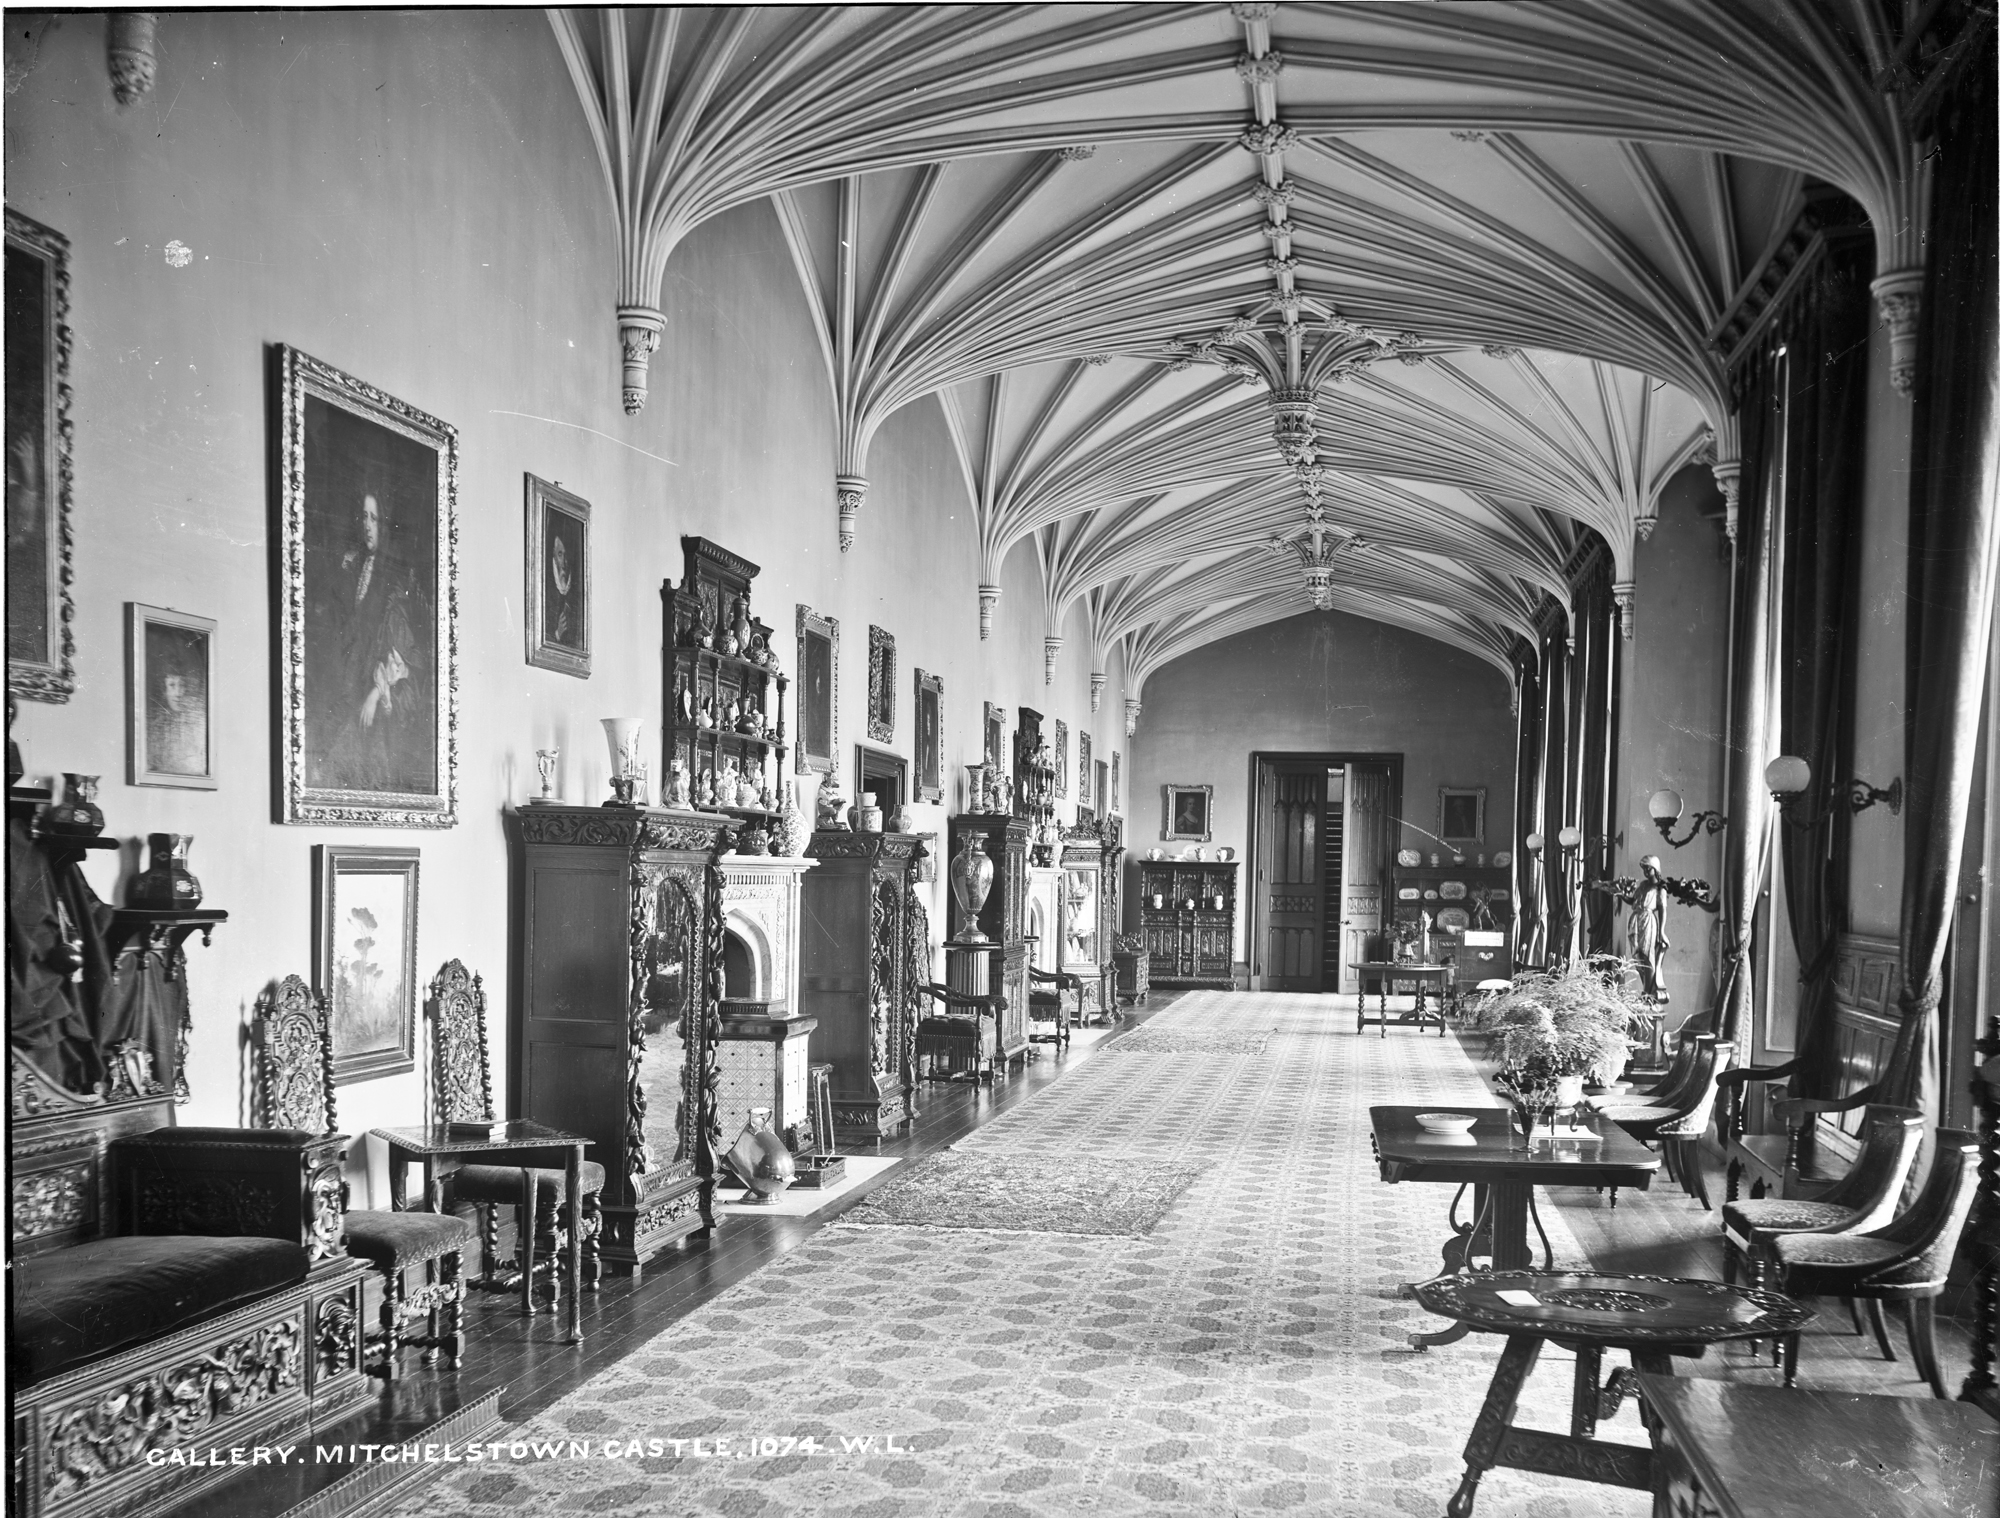 Gallery at Mitchelstown Castle, Cork